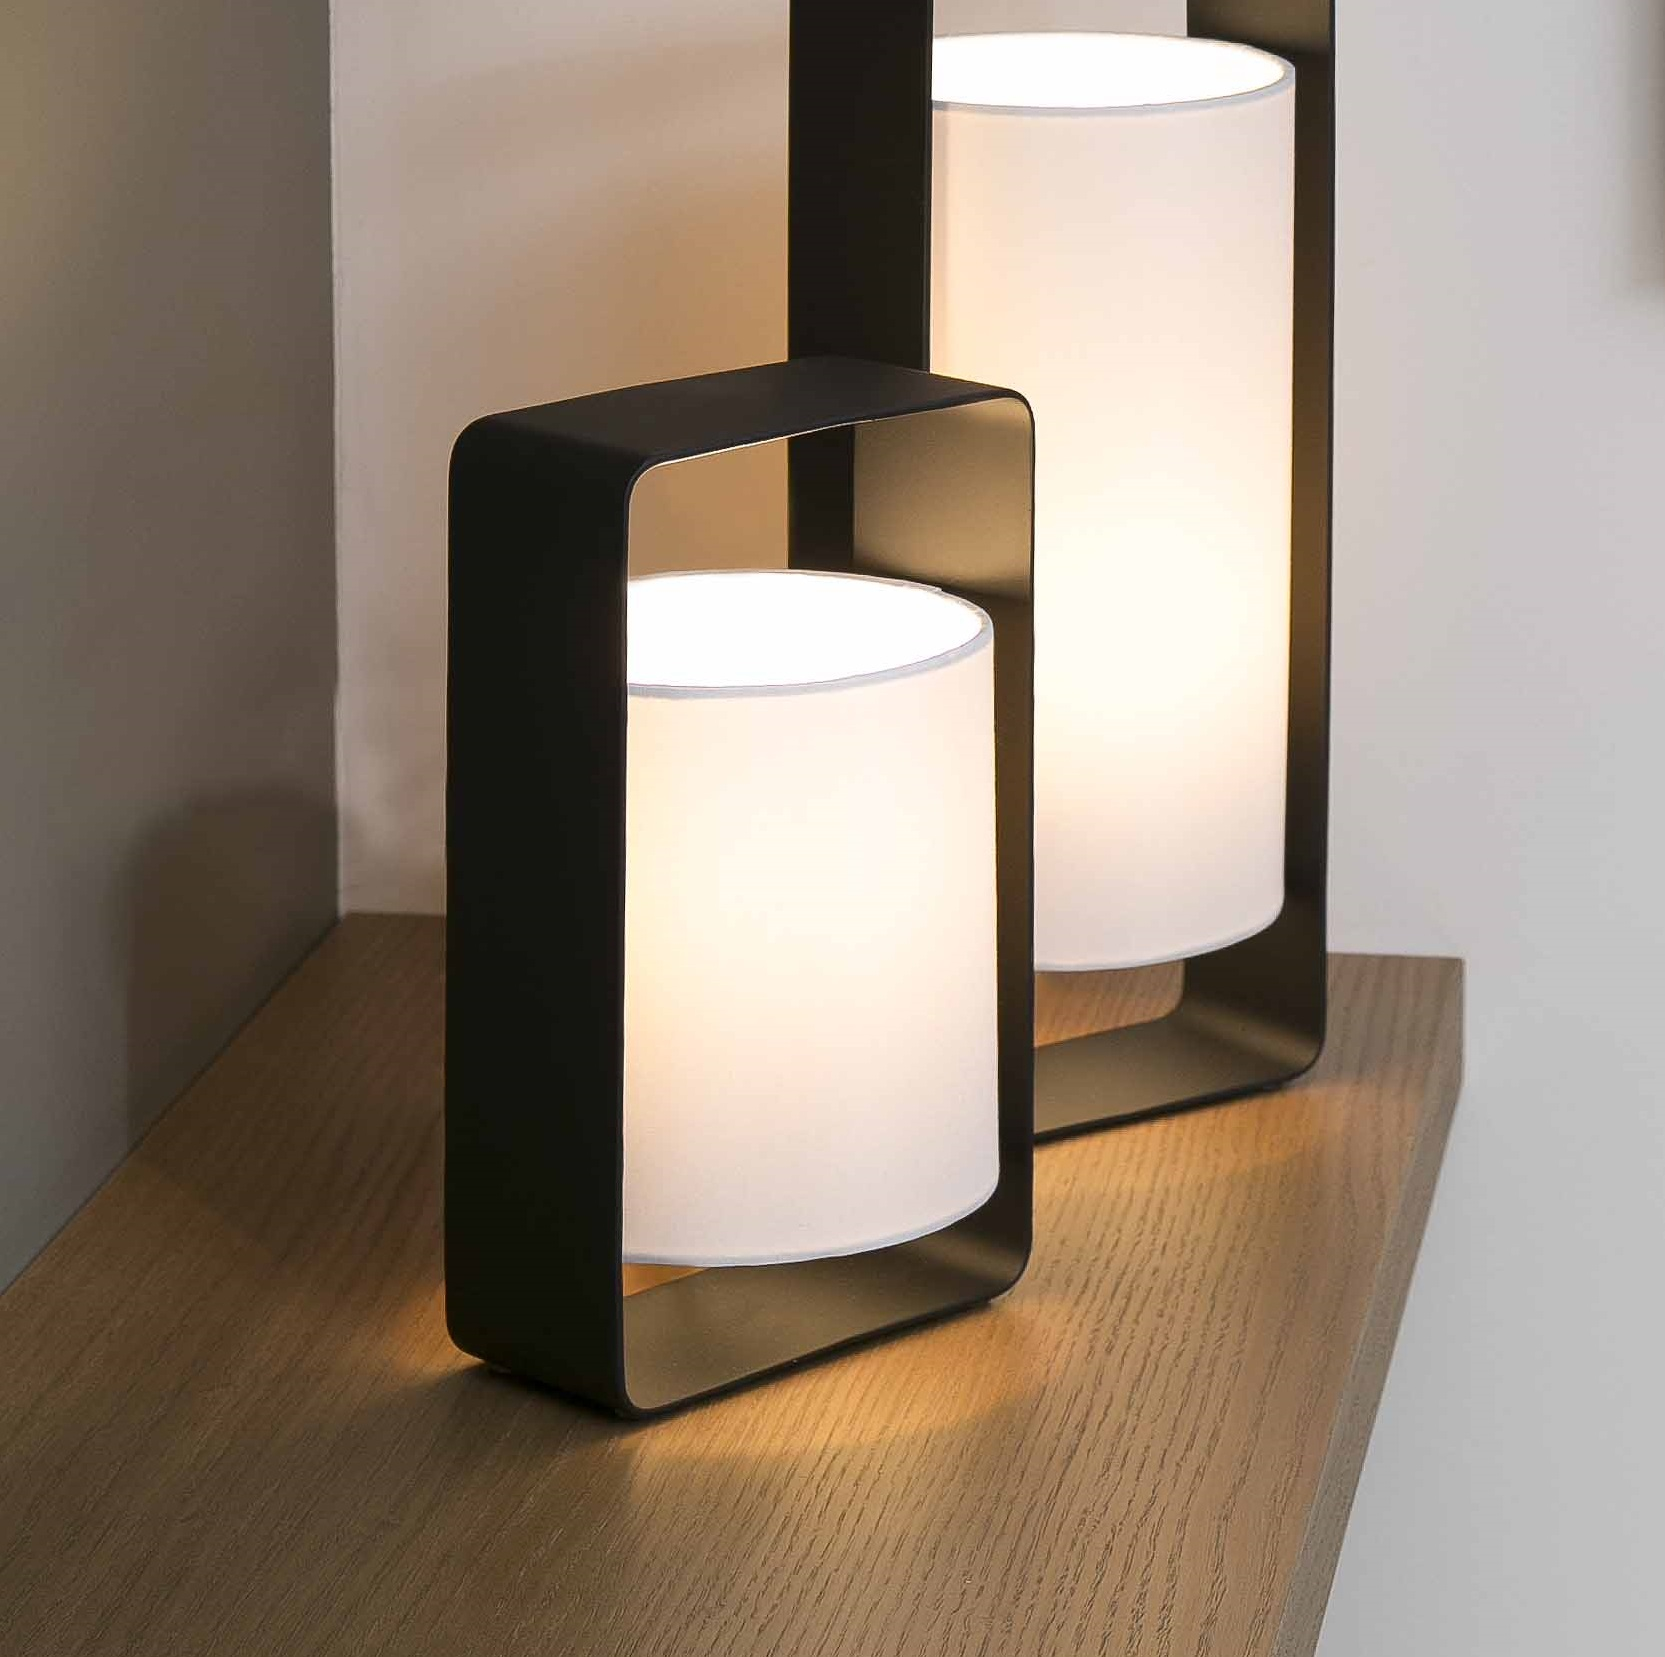 Table Lamp, Lula, Black U0026 White, H27cm   FARO   Nedgis Lighting